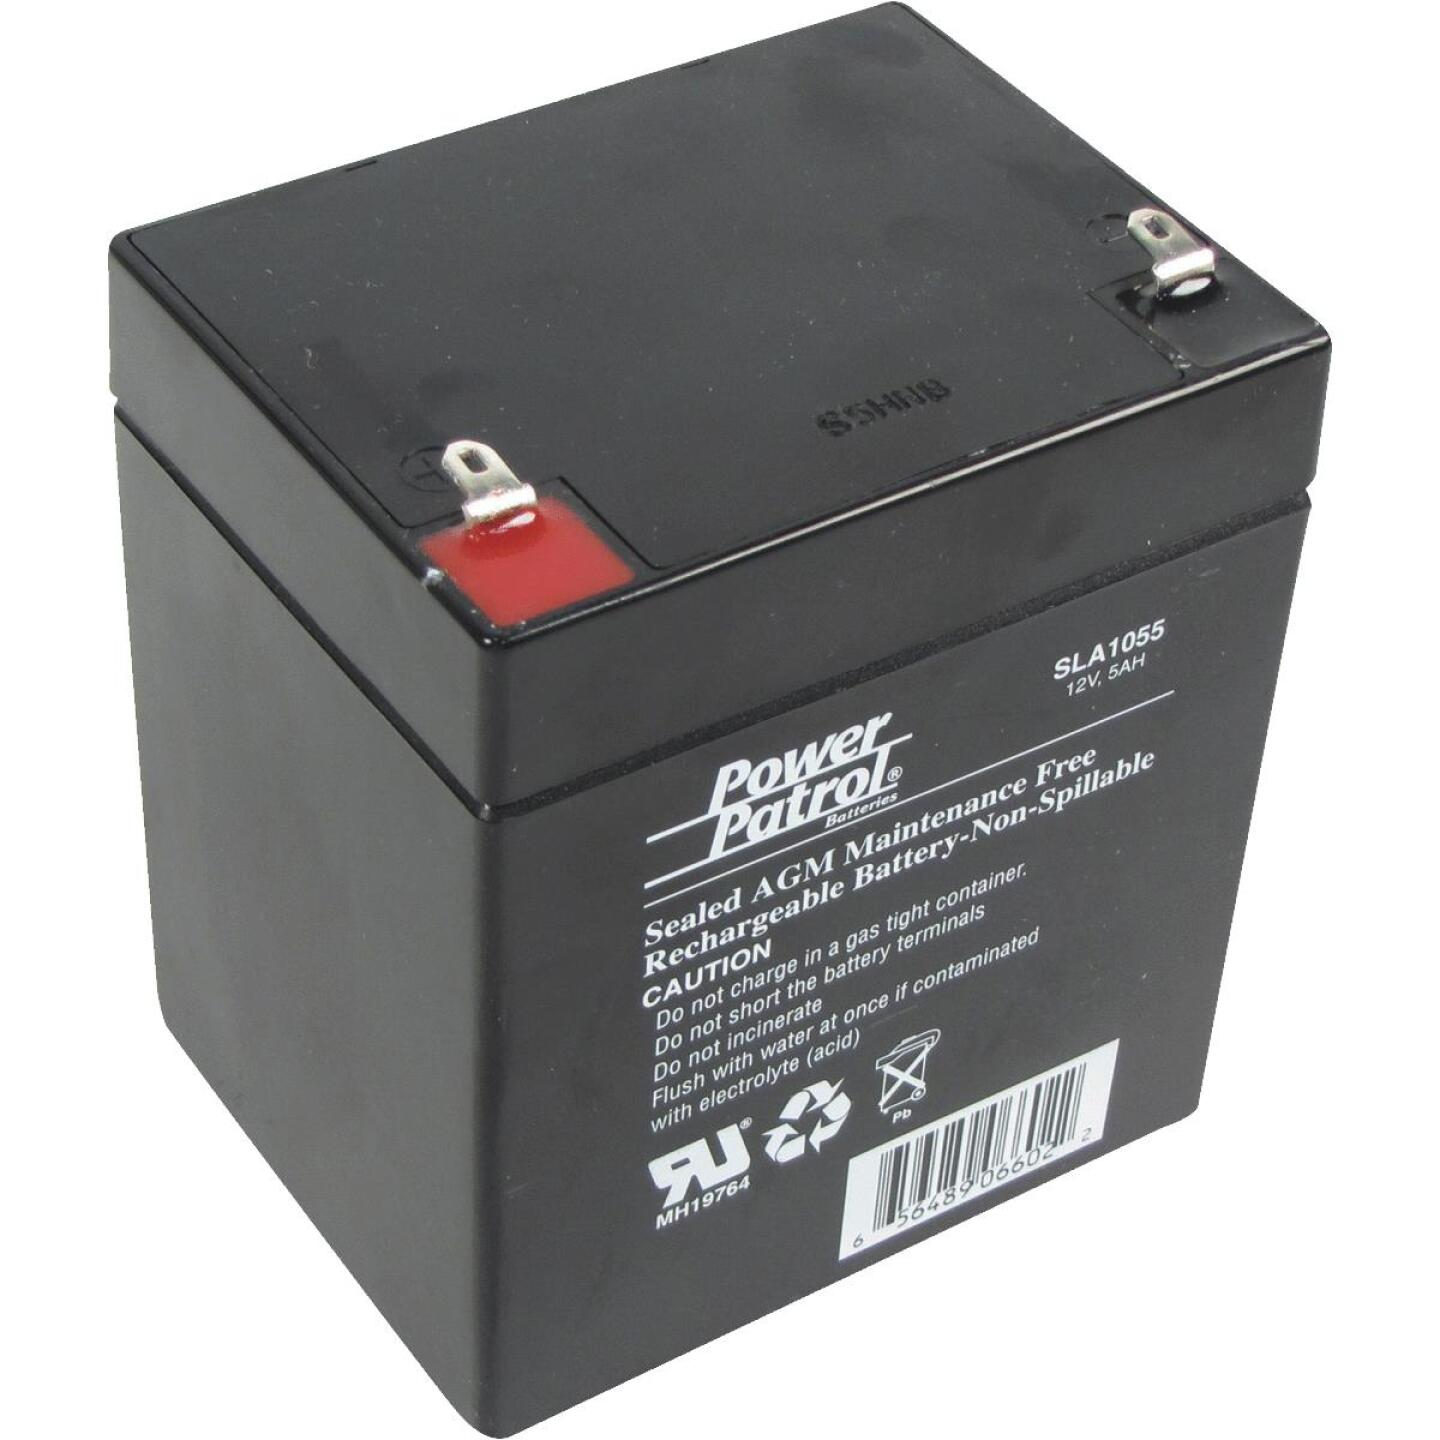 Interstate All Battery Power Patrol 12V 5A Security System Battery Image 1